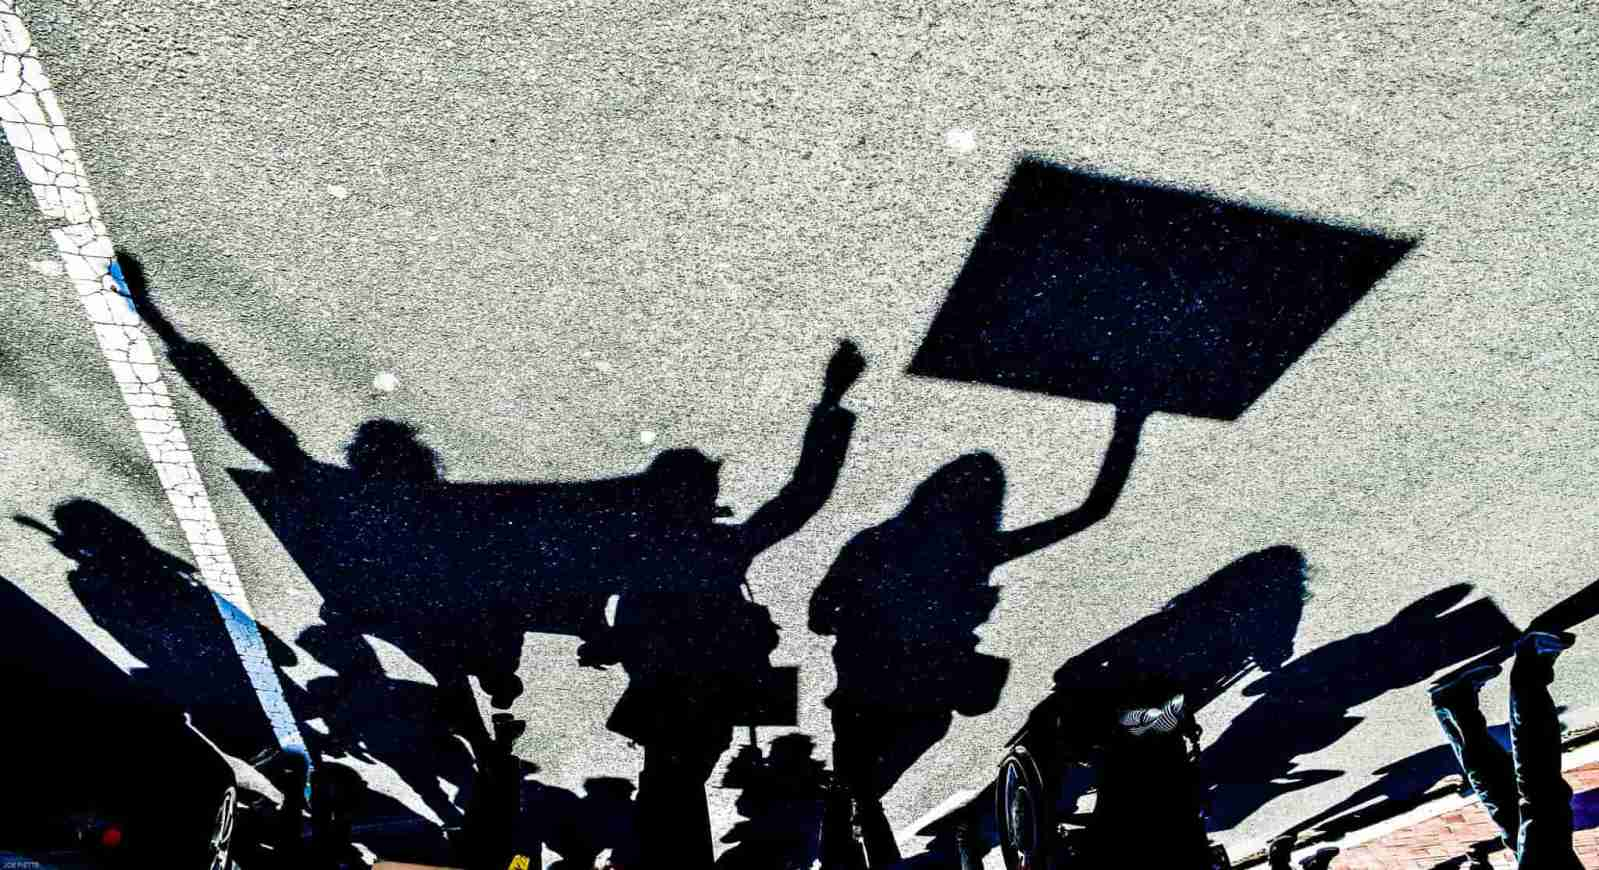 Protest by Joe Plette (flickr.com) CC BY-NC 2.0